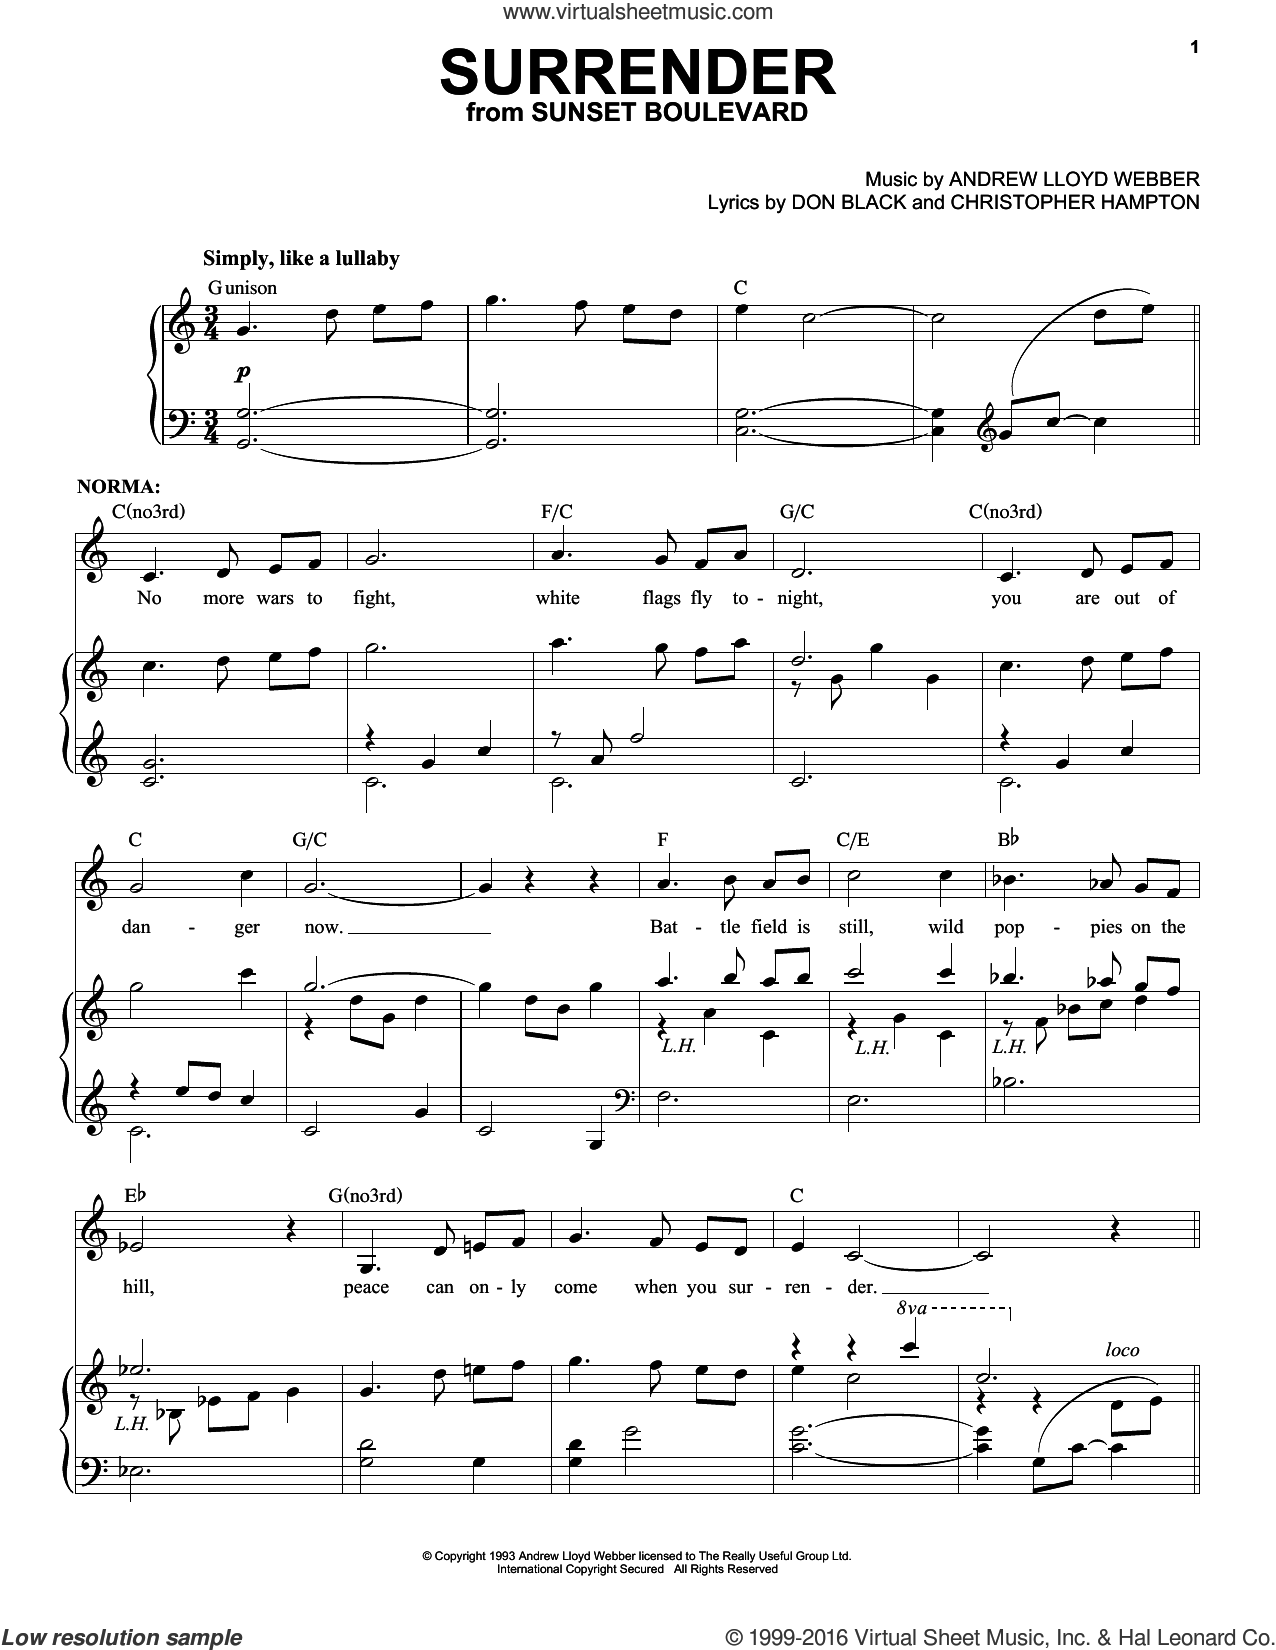 Surrender sheet music for voice and piano by Don Black